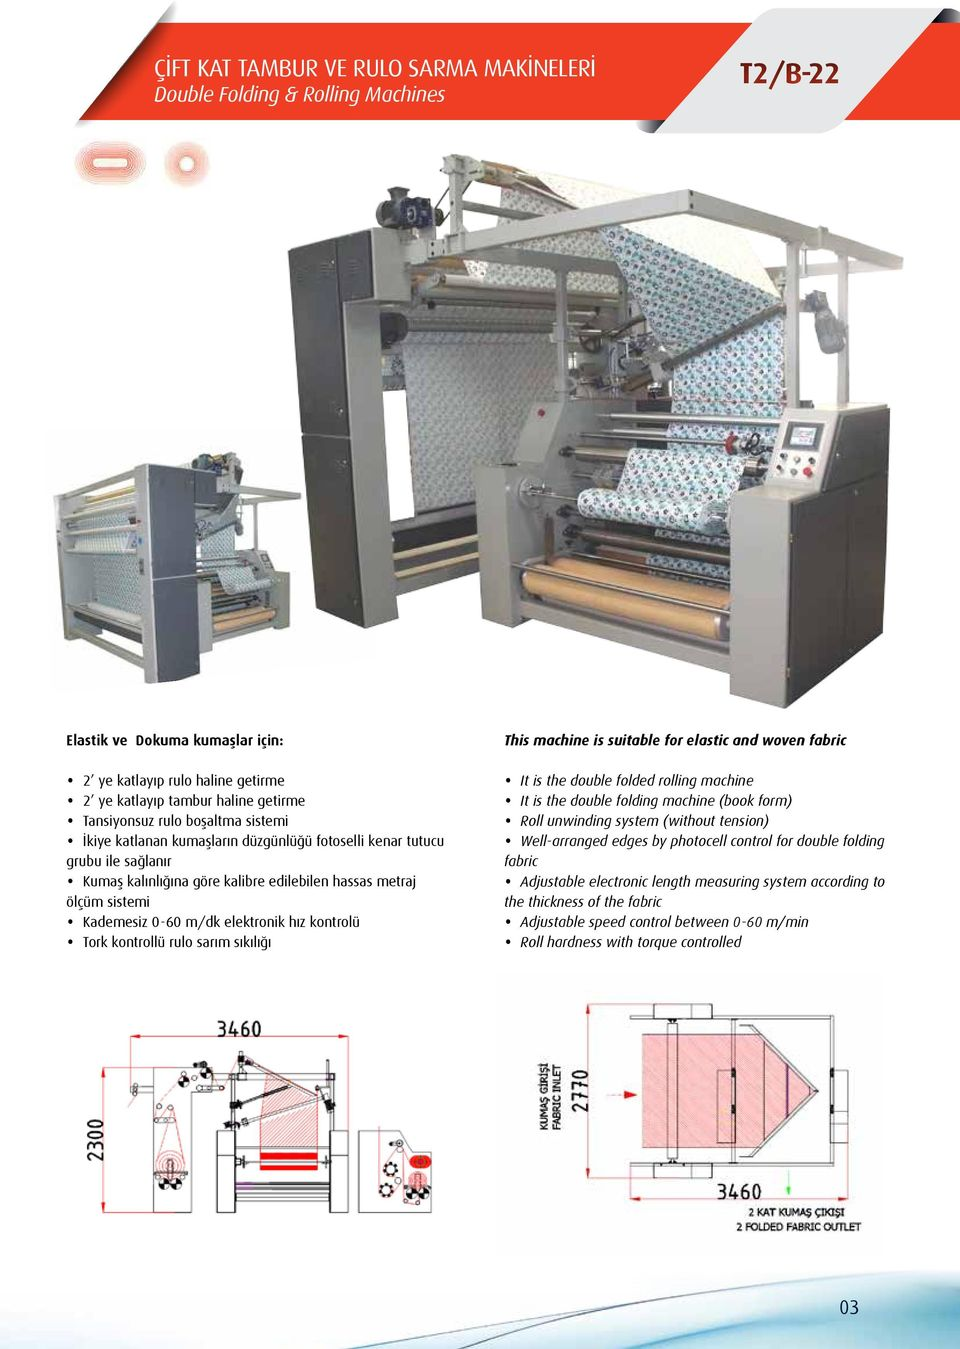 elektronik hız kontrolü Tork kontrollü rulo sarım sıkılığı This machine is suitable for elastic and woven fabric It is the double folded rolling machine It is the double folding machine (book form)